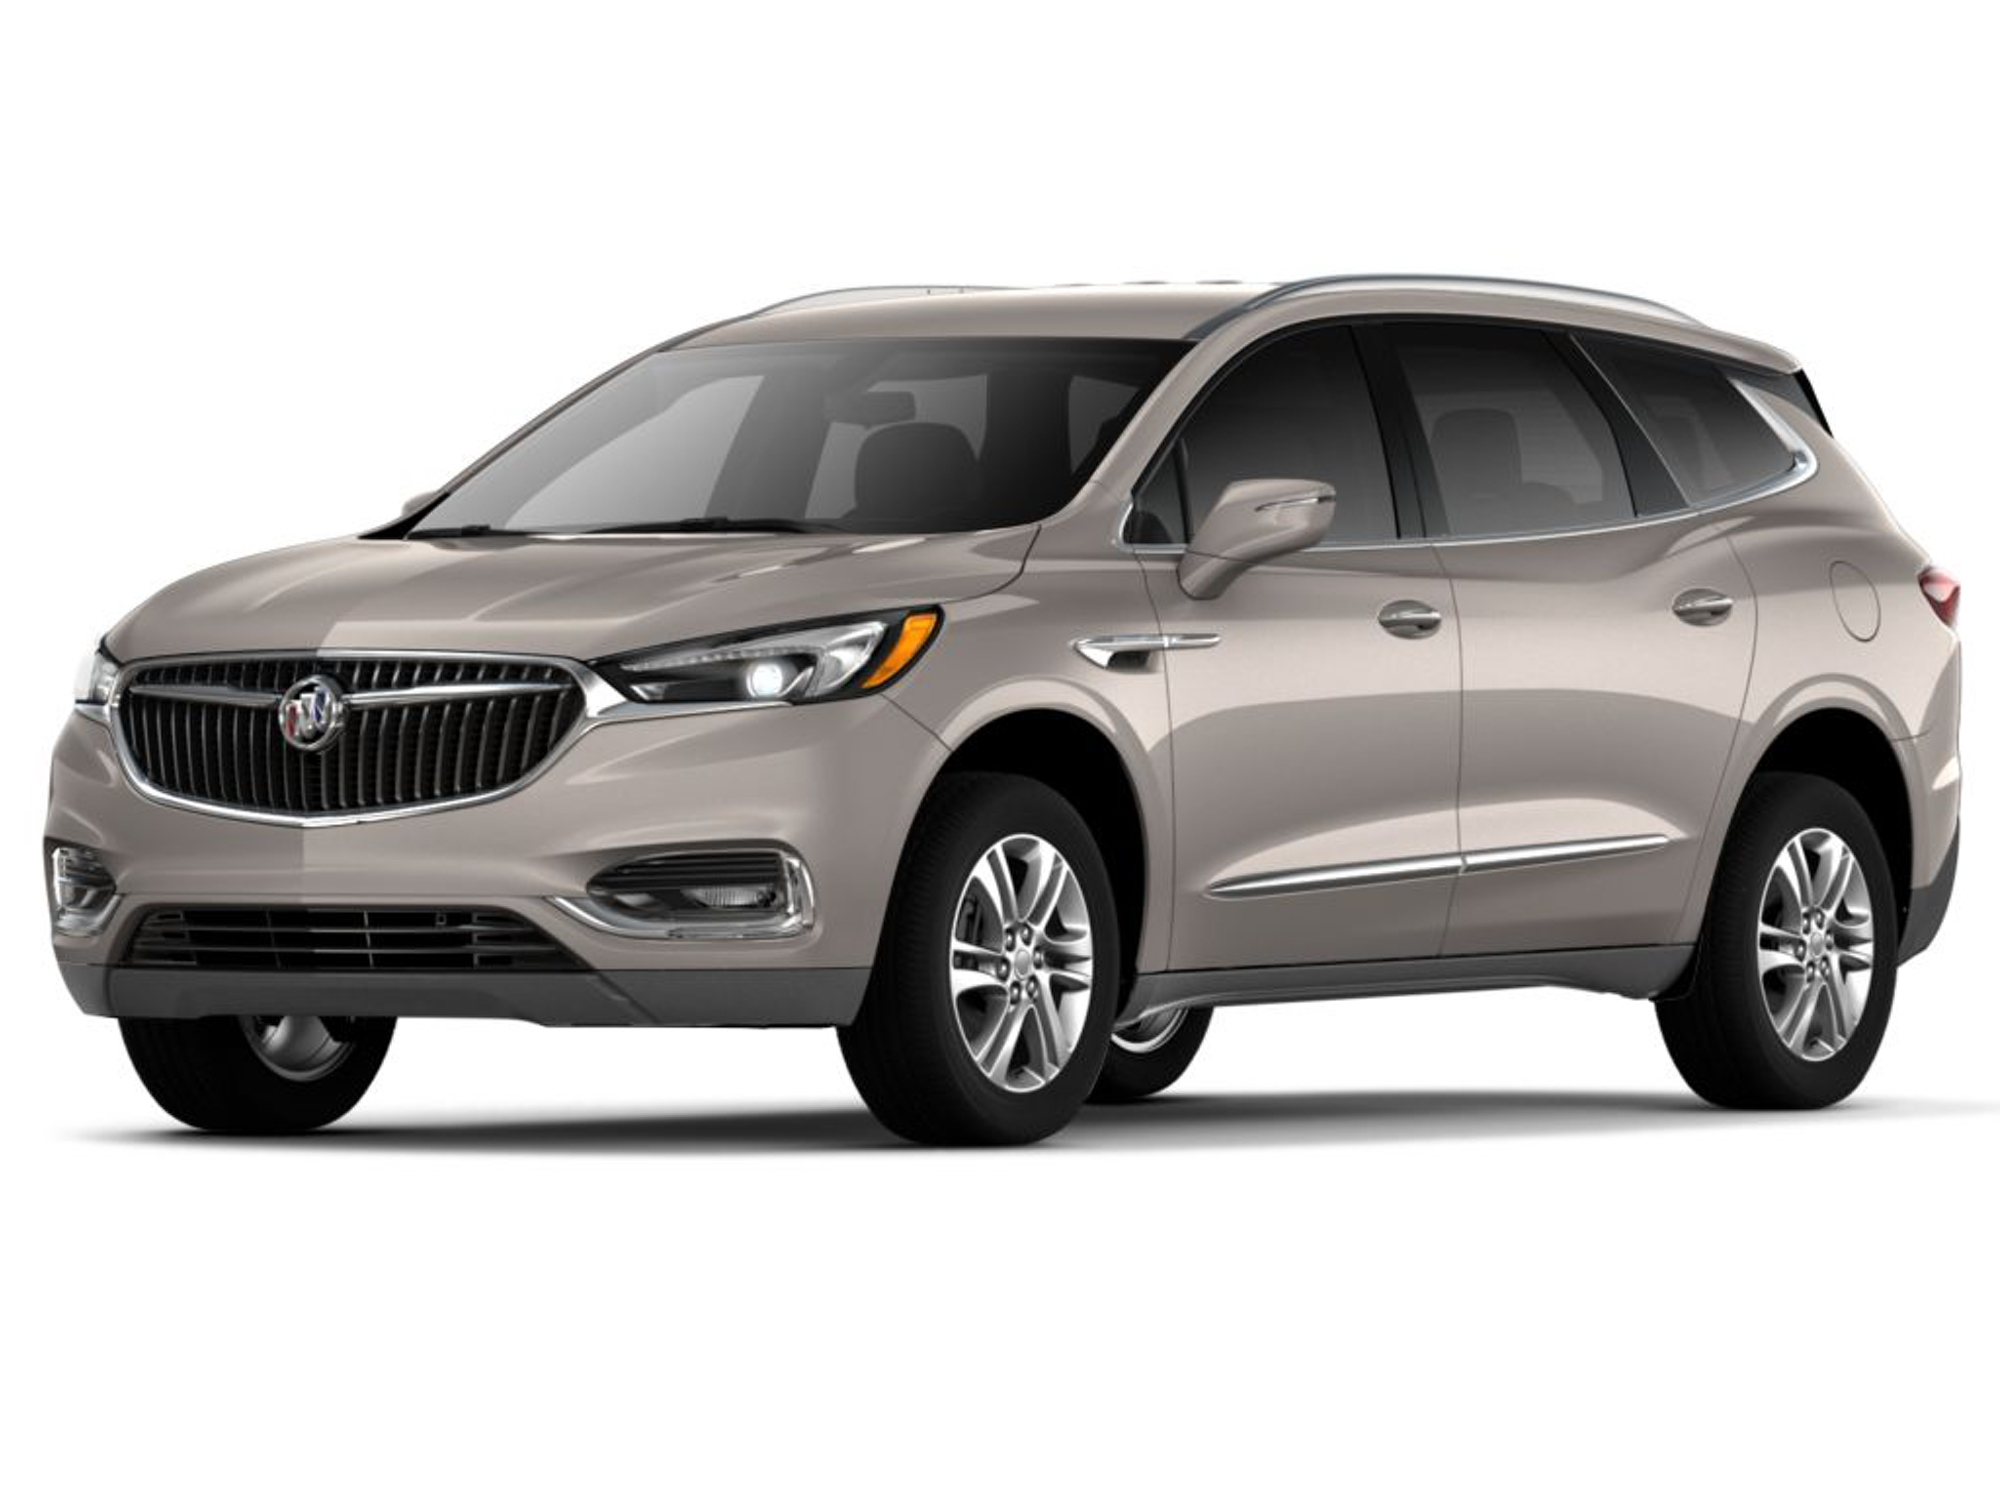 2019 Buick Enclave Exterior Colors | Gm Authority New 2022 Buick Enclave Avenir Exterior Colors, Interior, Awd